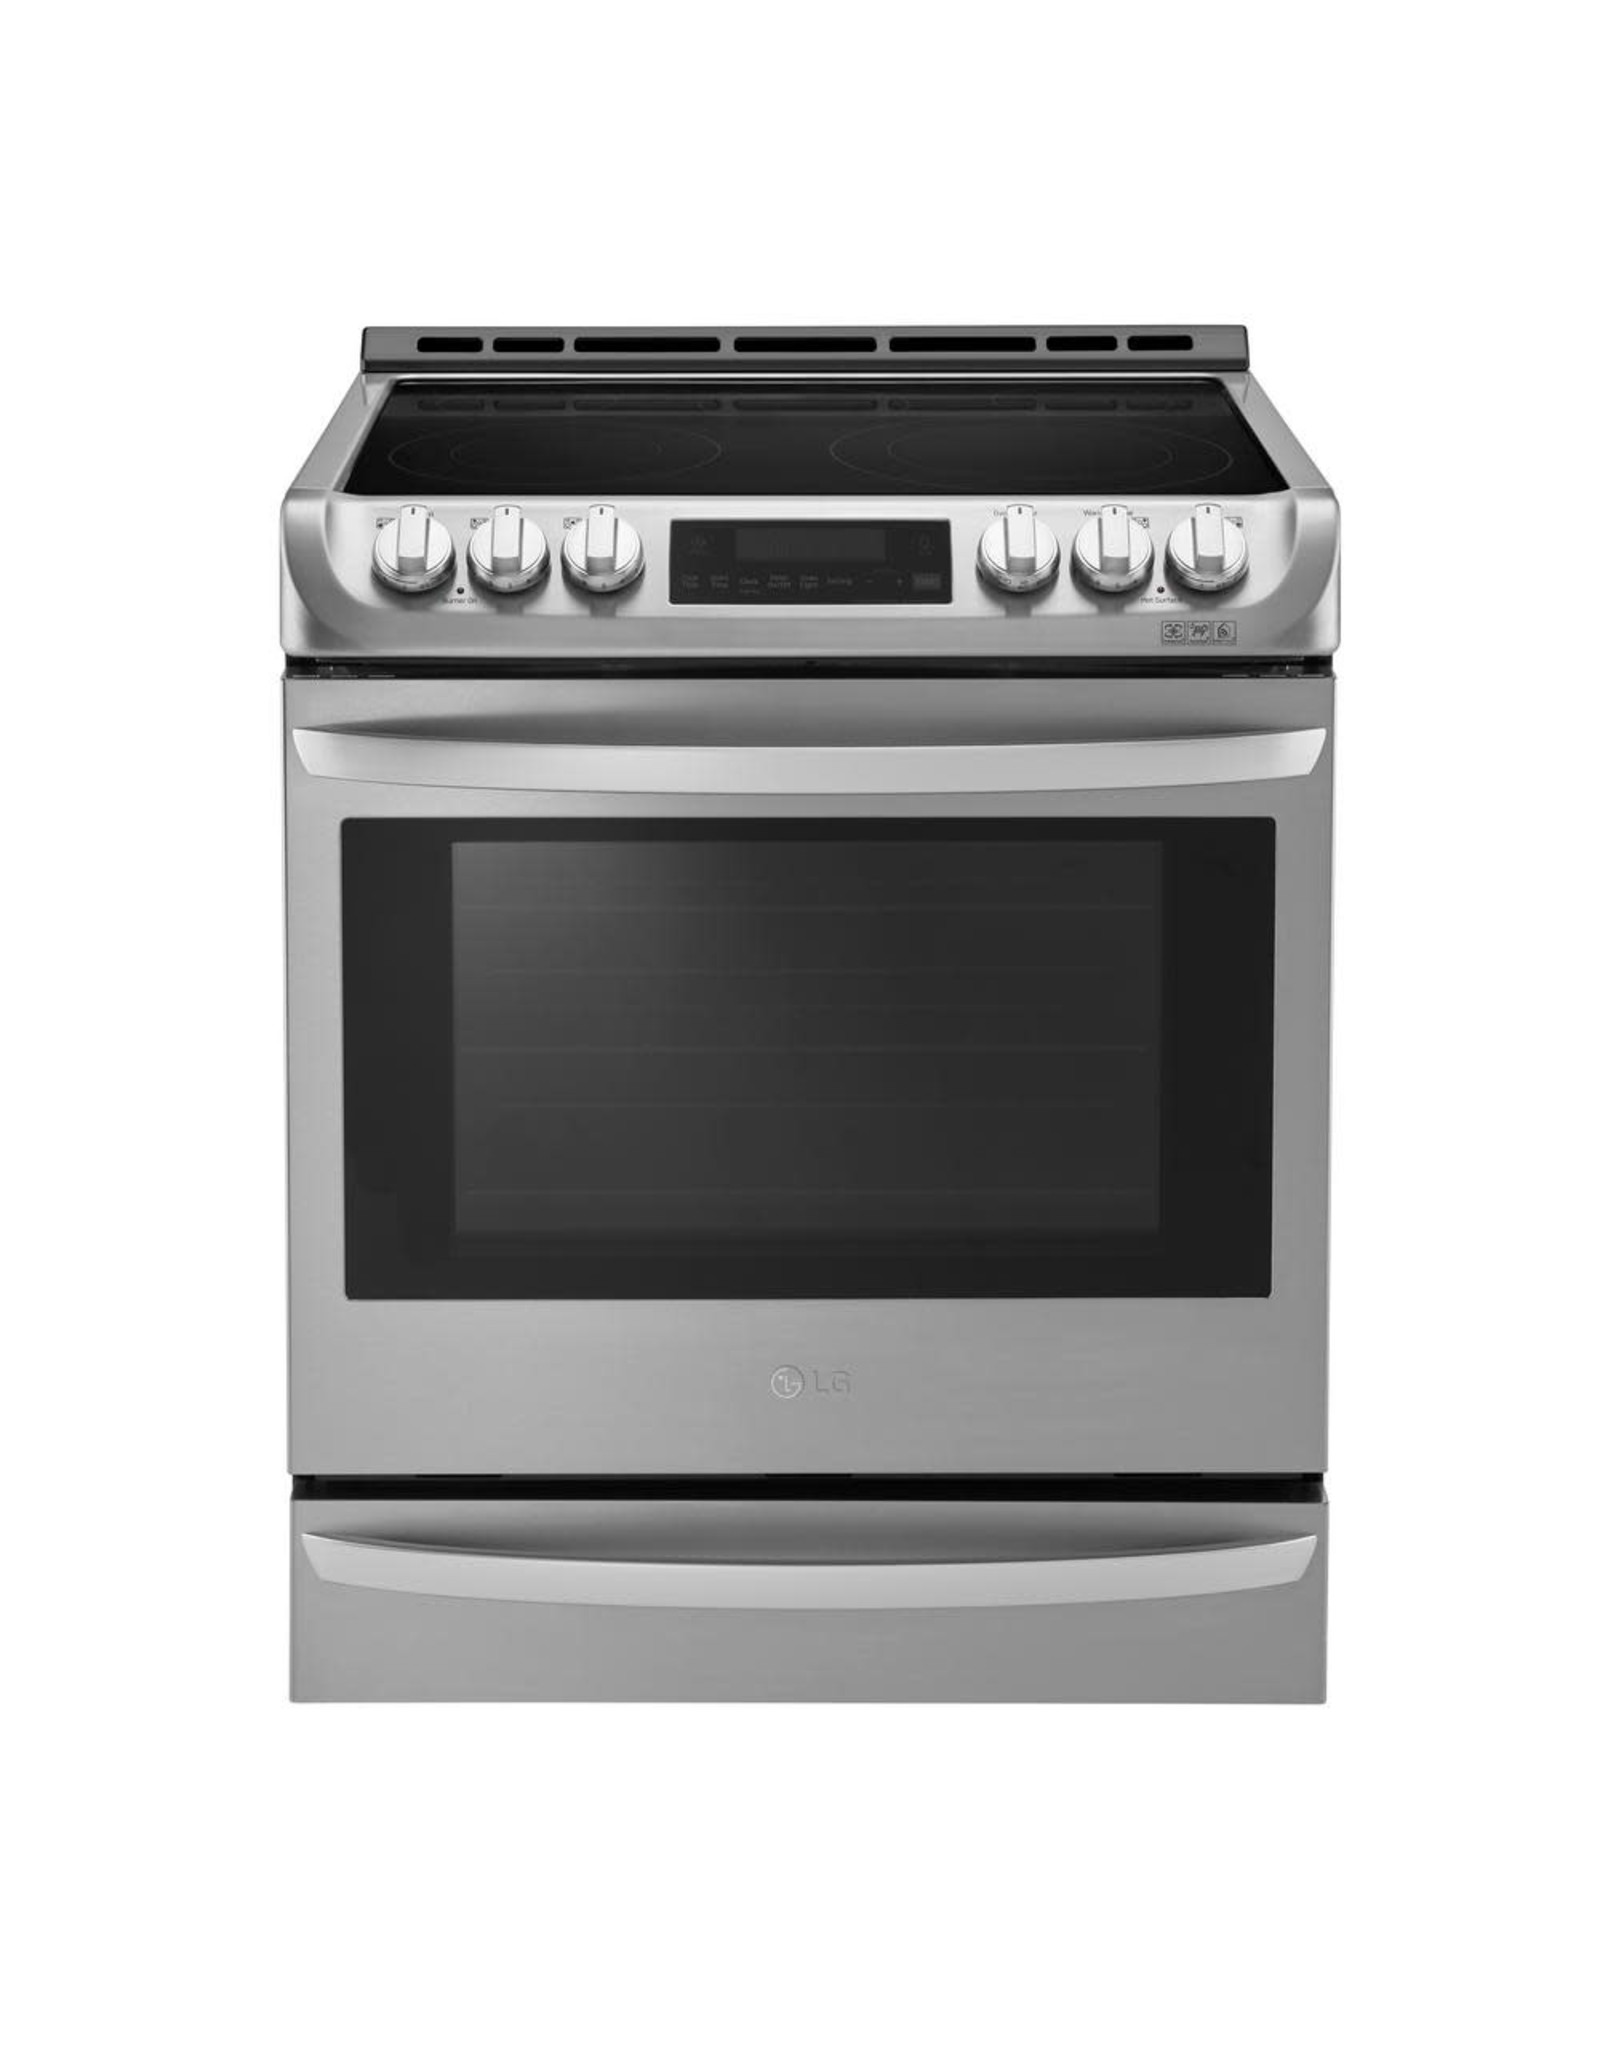 LG Electronics LSE4613ST 6.3 cu. ft. Slide-In Electric Range with ProBake Convection Oven, Self Clean and EasyClean in Stainless Steel